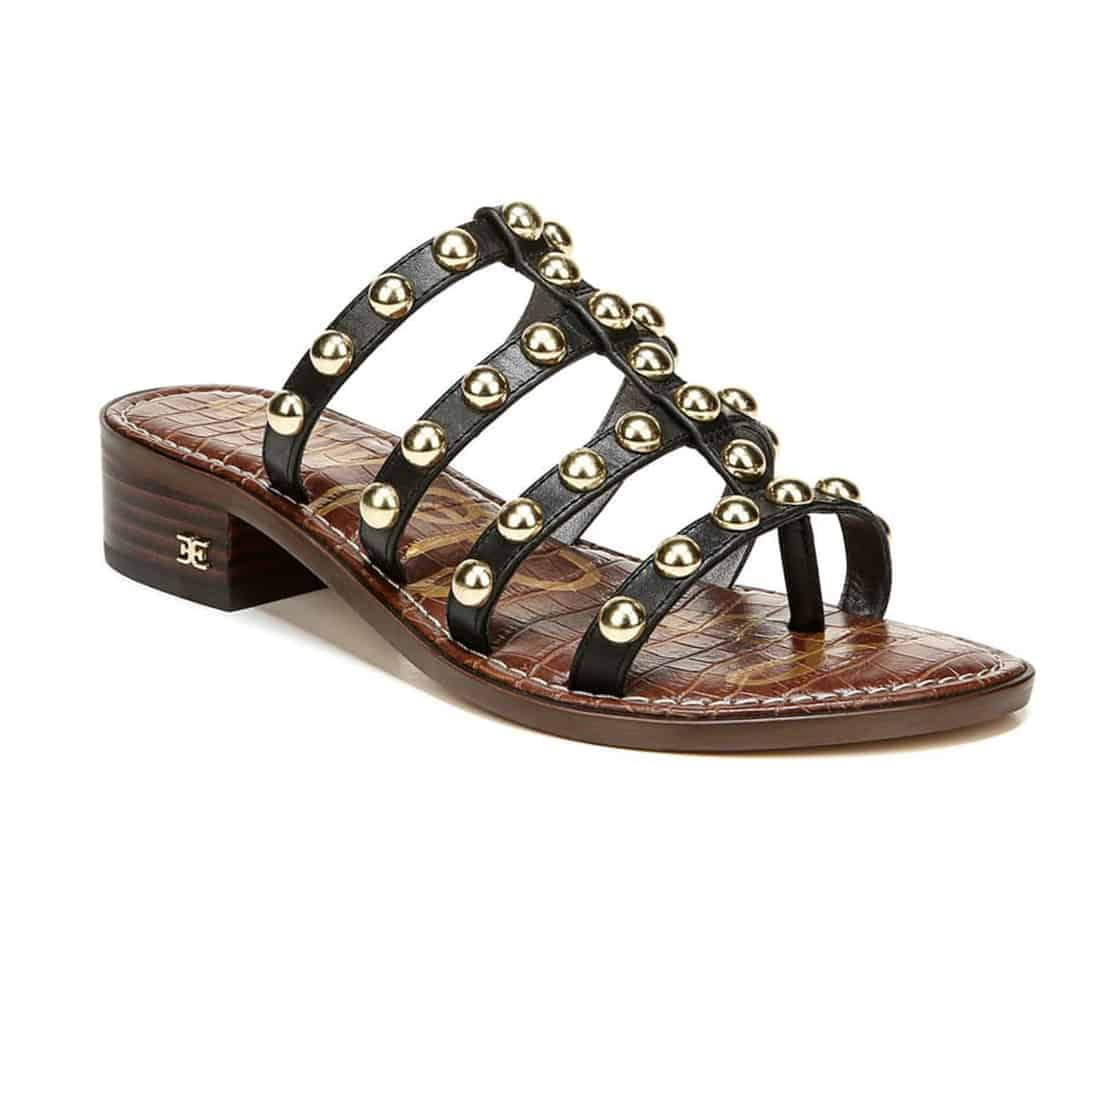 Sam Edelman Juniper Stud Sandal In Black 62223